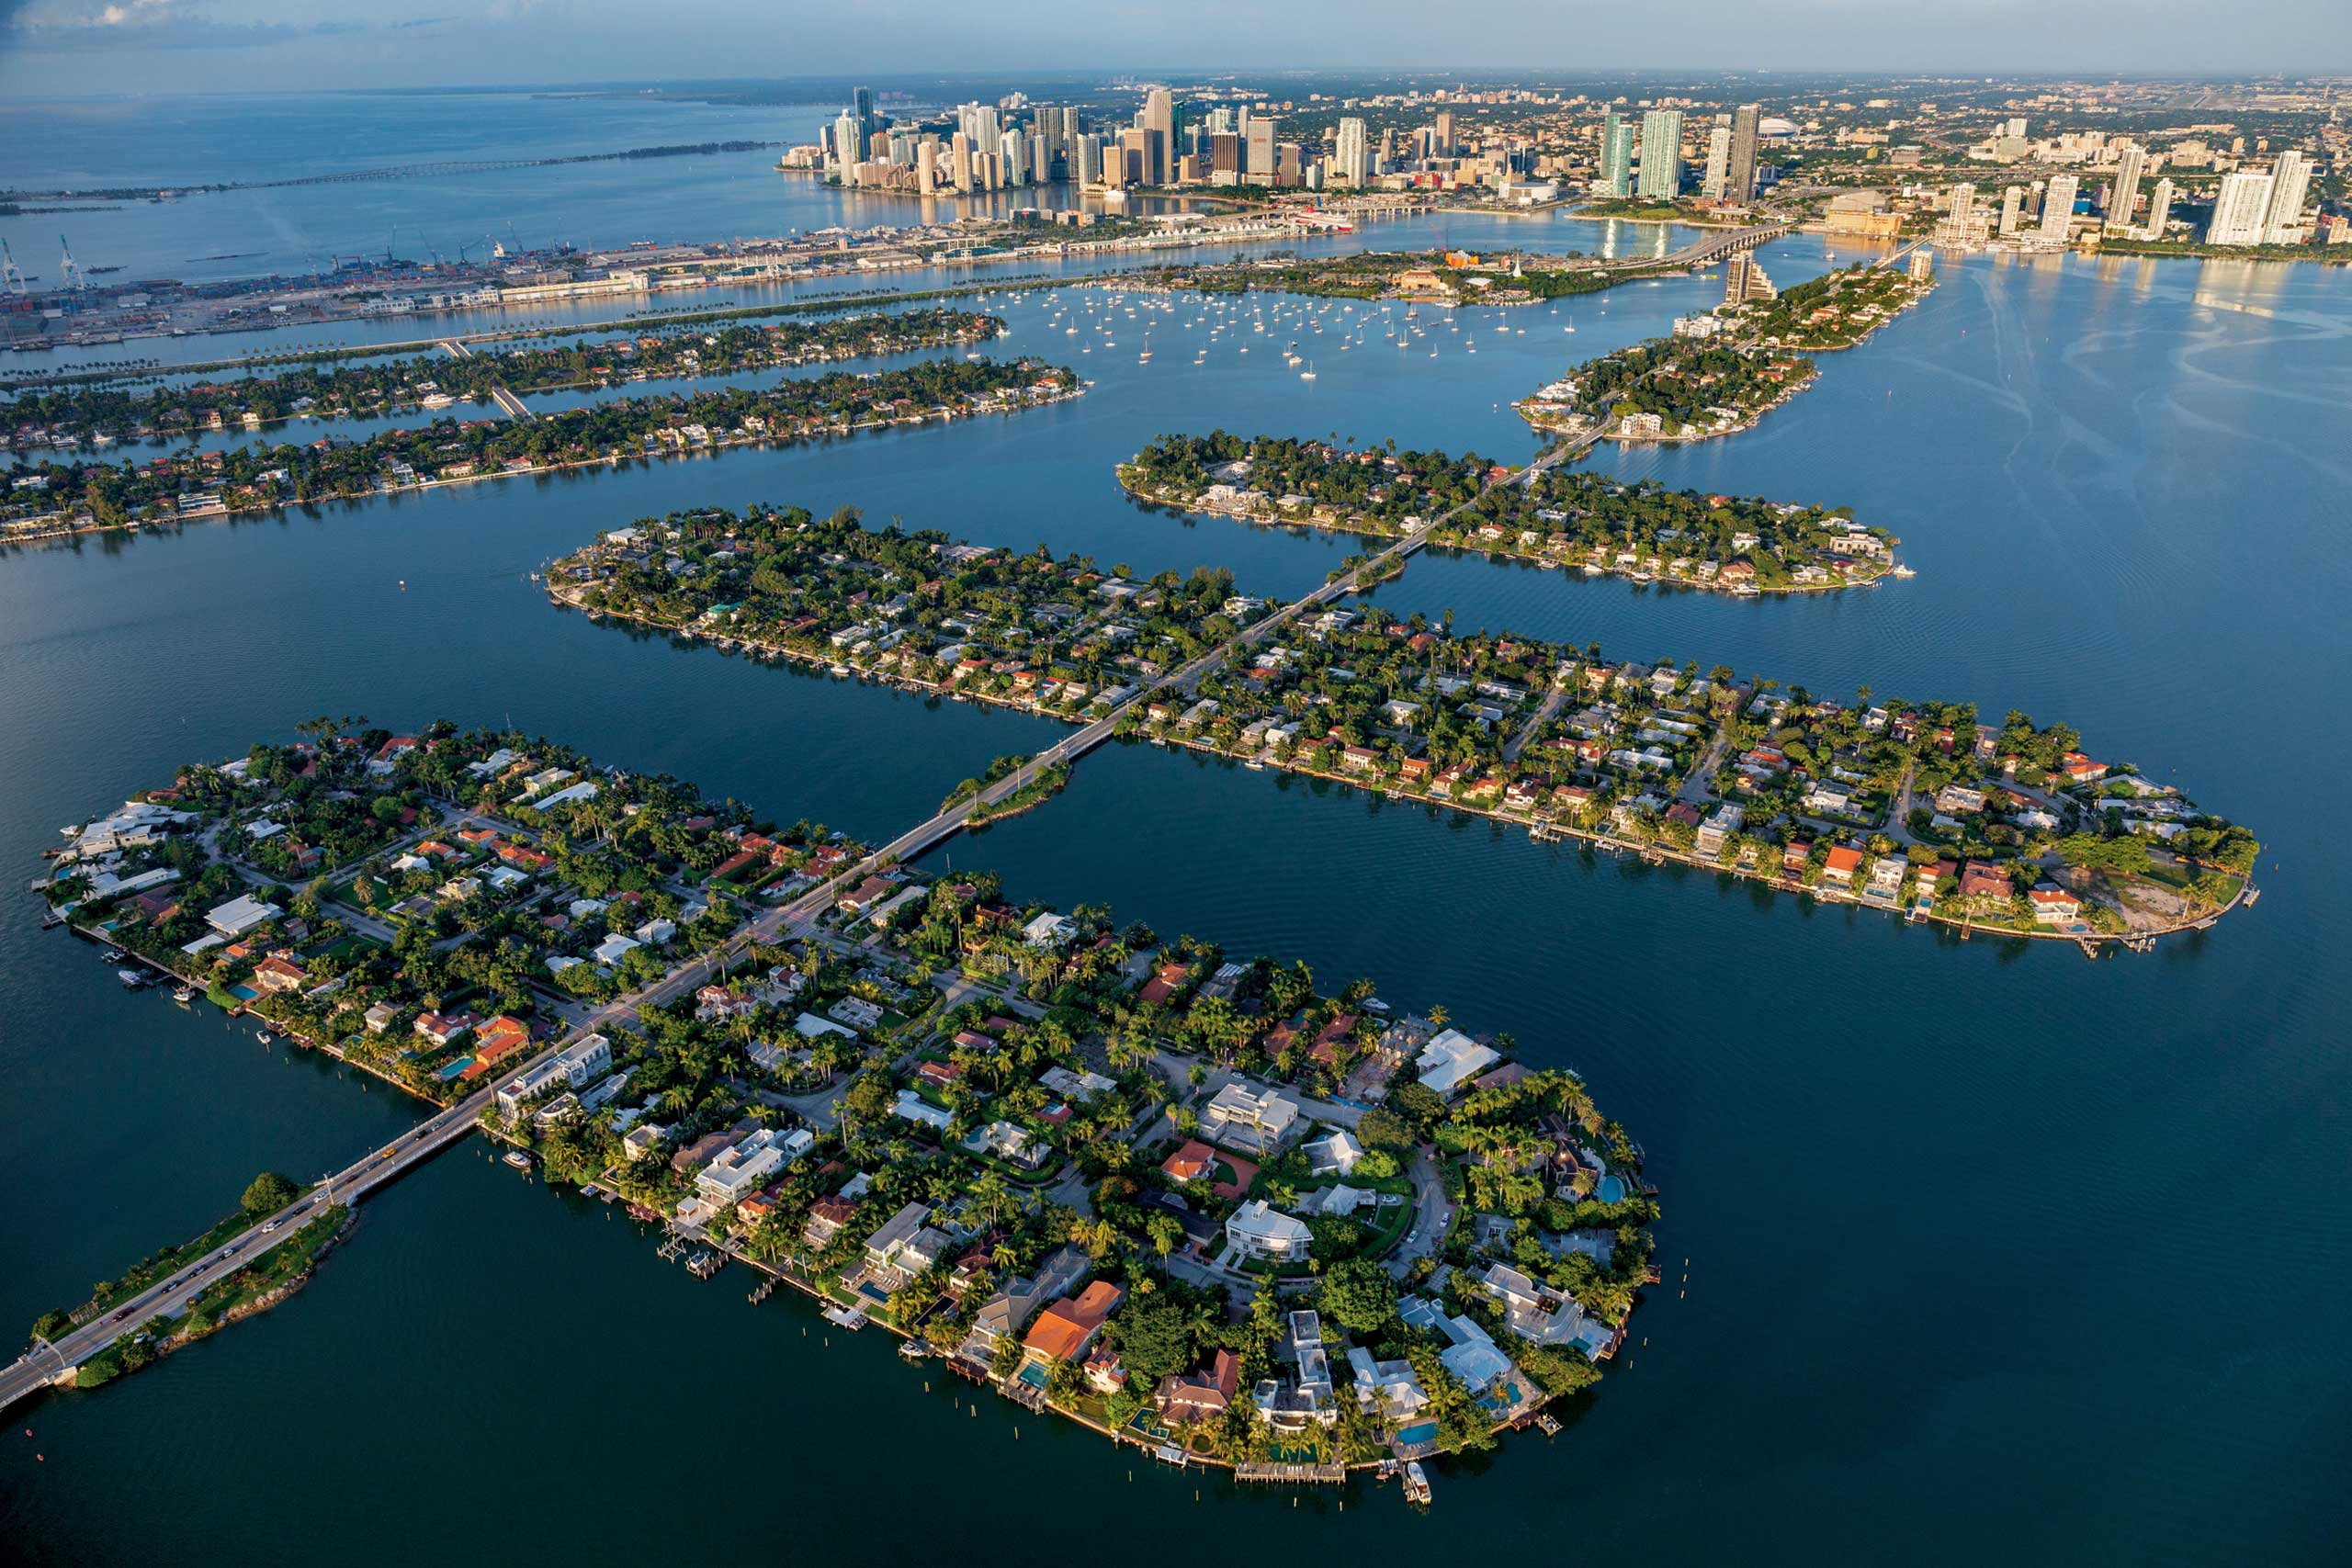 From the February issue of National Geographic magazine: Treading WatersIn Biscayne Bay the Venetian Causeway connects Miami Beach to Miami (in the distance) by way of the six man-made Venetian Islands, which epitomize waterfront living.